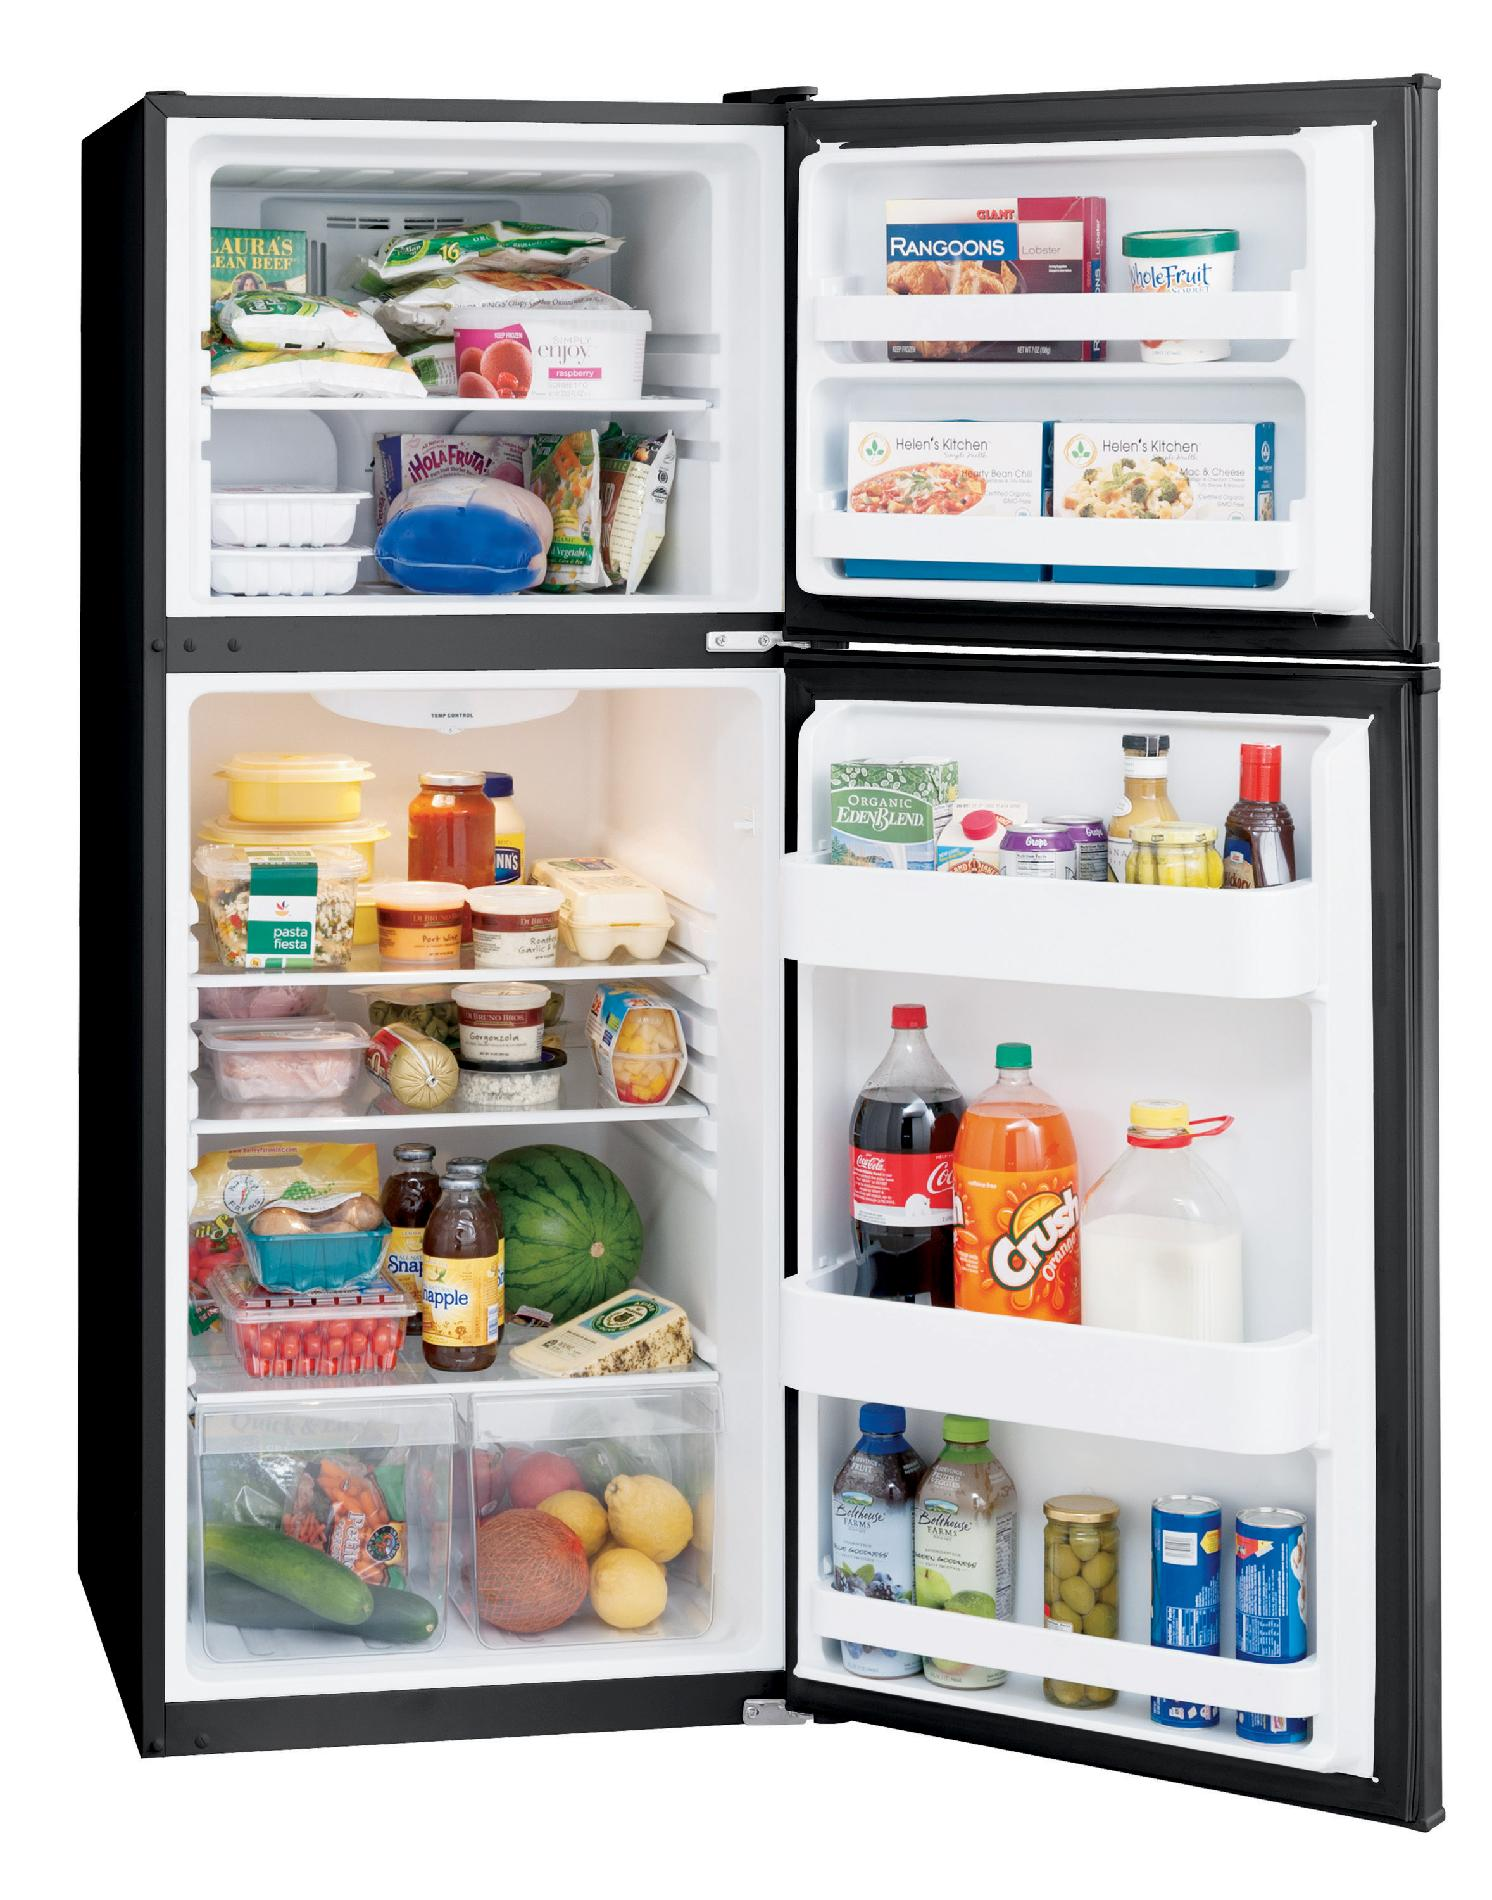 Frigidaire 11.5 cu. ft. Top-Freezer Refrigerator - Black